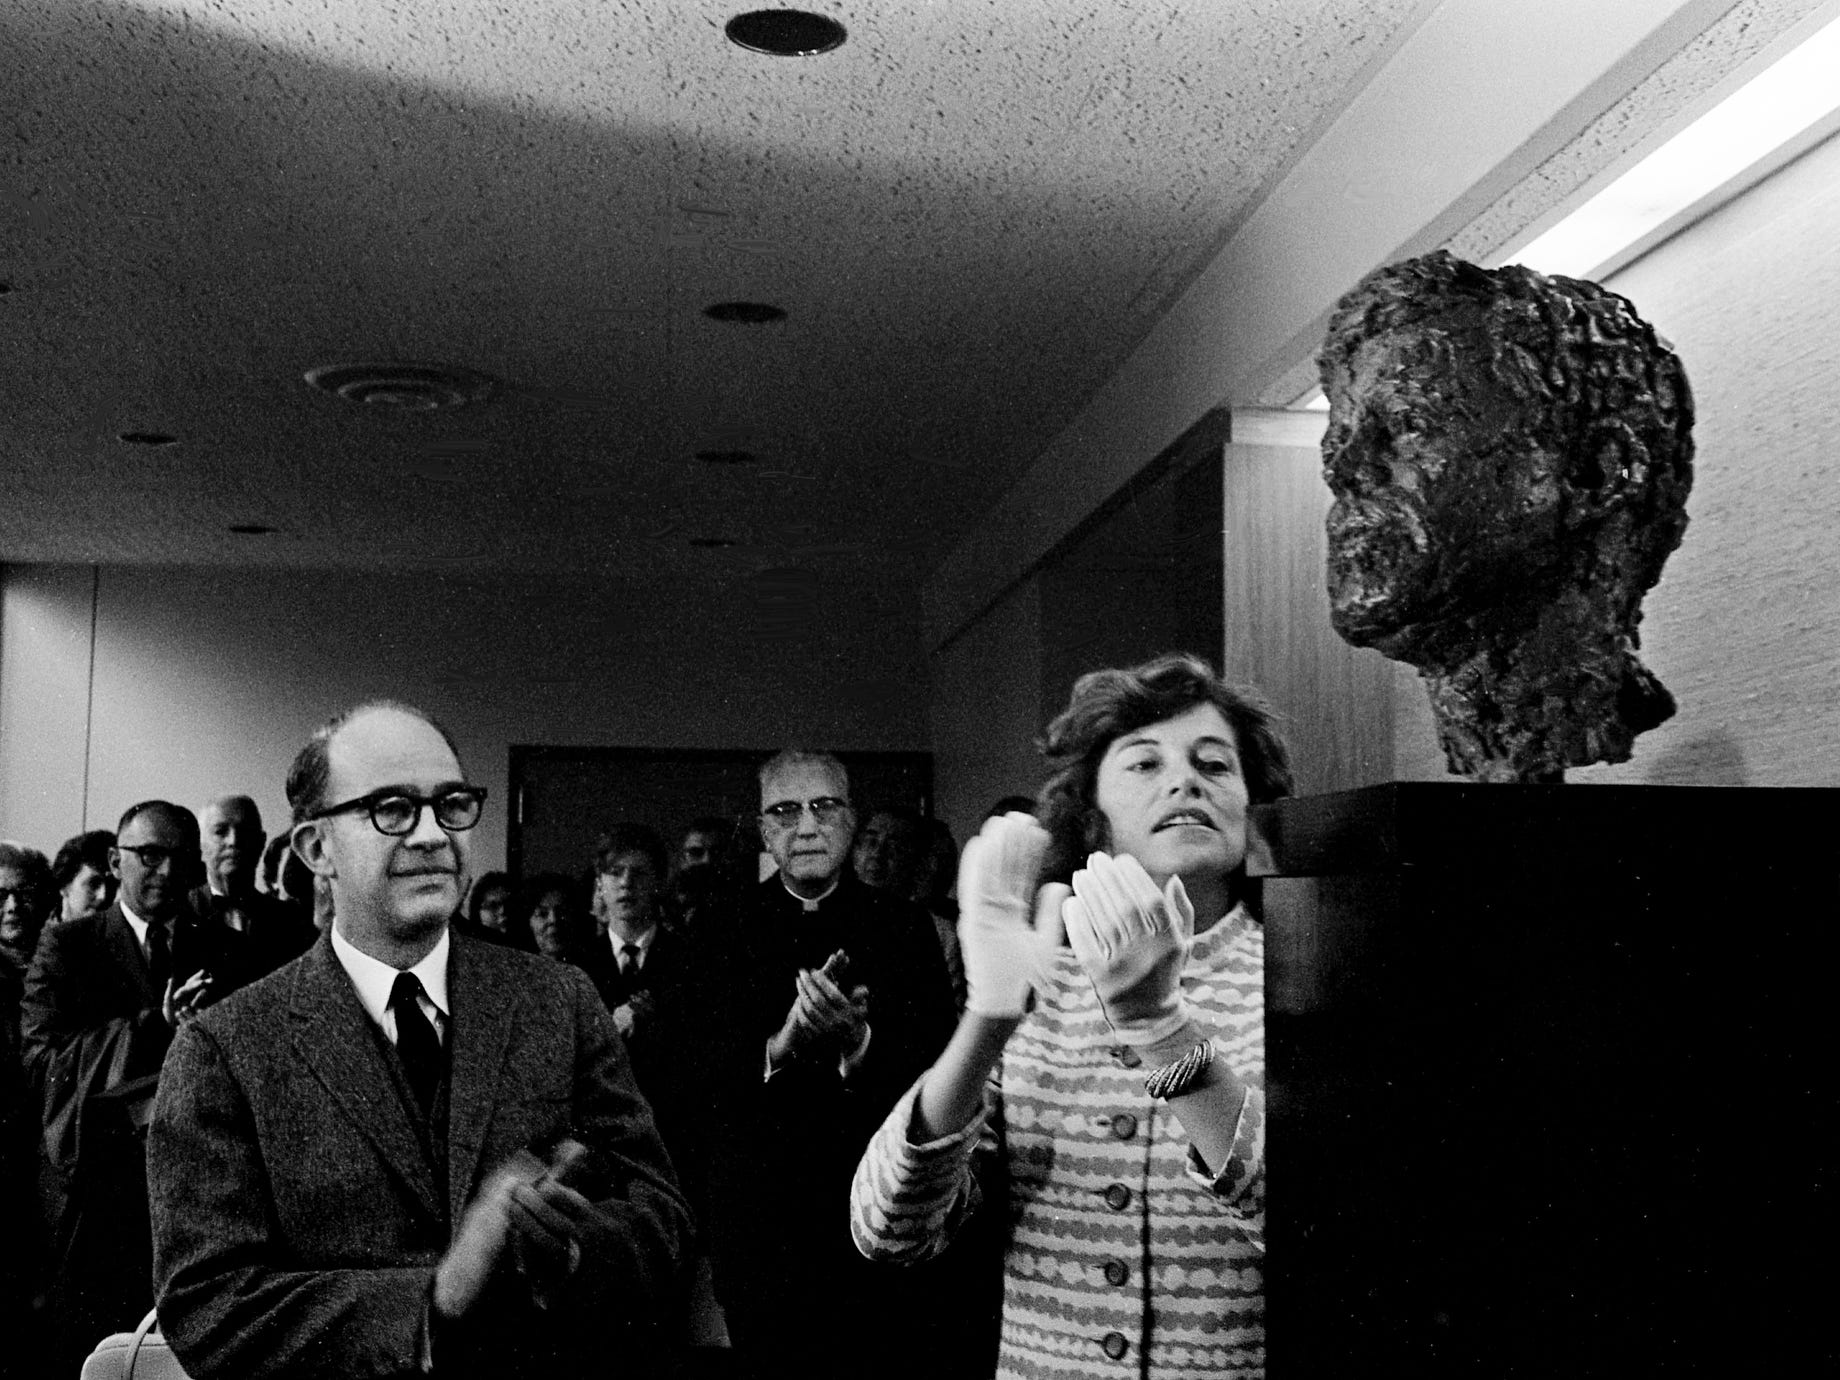 Eunice Shriver, right, admires the sculptured head of her late brother during the dedication of the John F. Kennedy Center for Research on Education and Human Development at Peabody College on March 31, 1968.